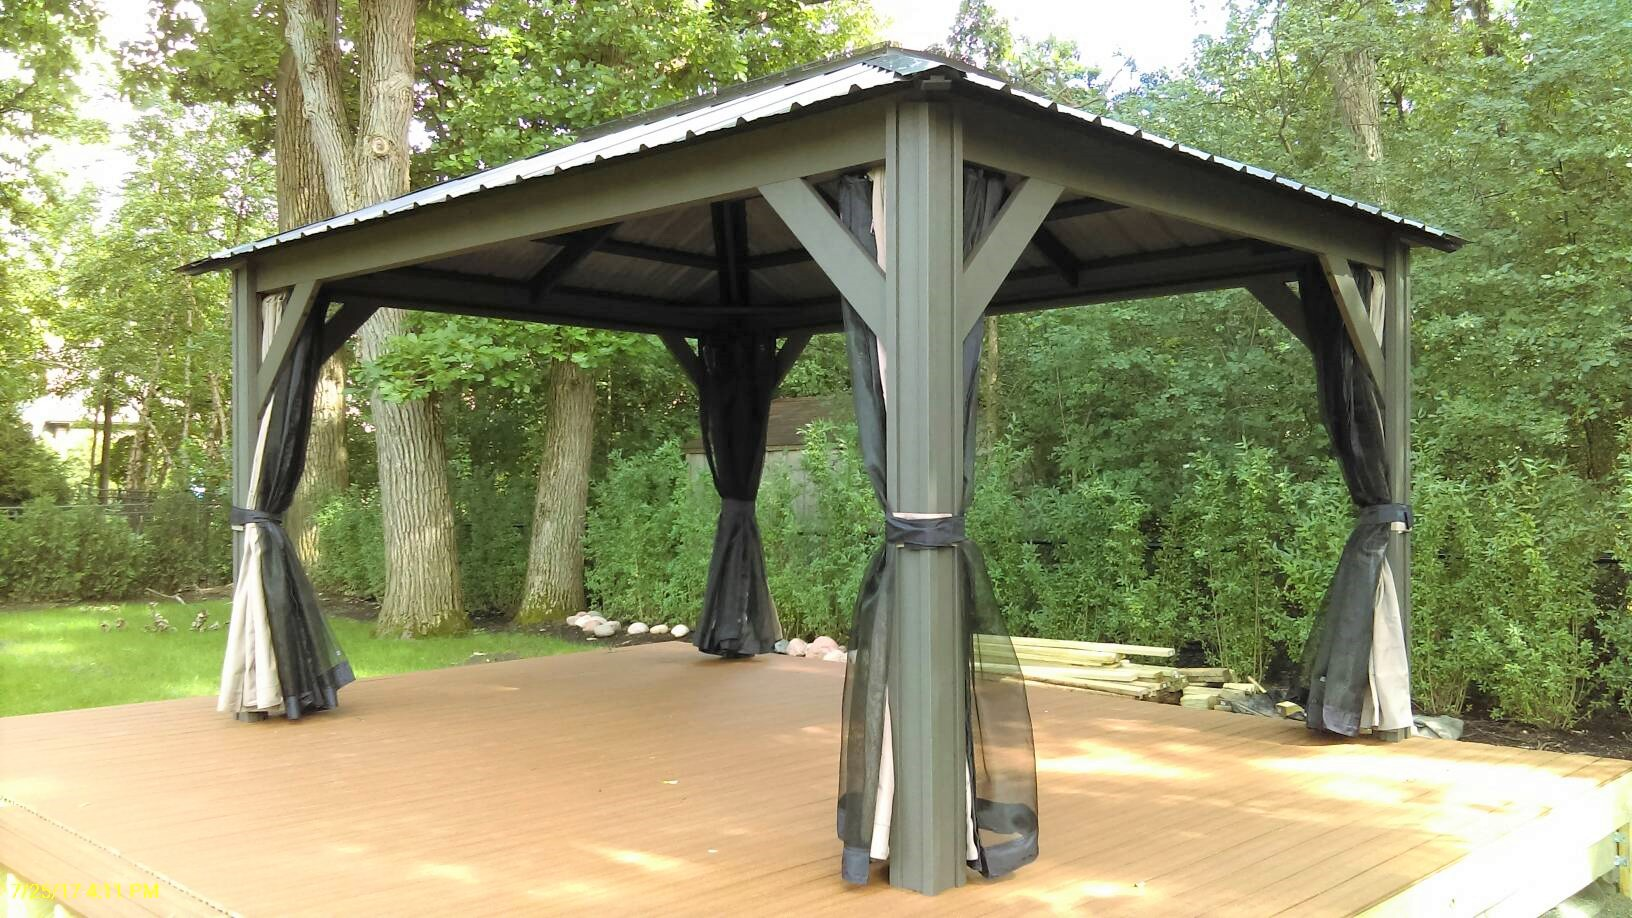 Transmotion Delivery Assembly Installation Relocation Chicago IL Visscher  Verona Gazebo 11 X 14 Blacksmith (3 Part 89